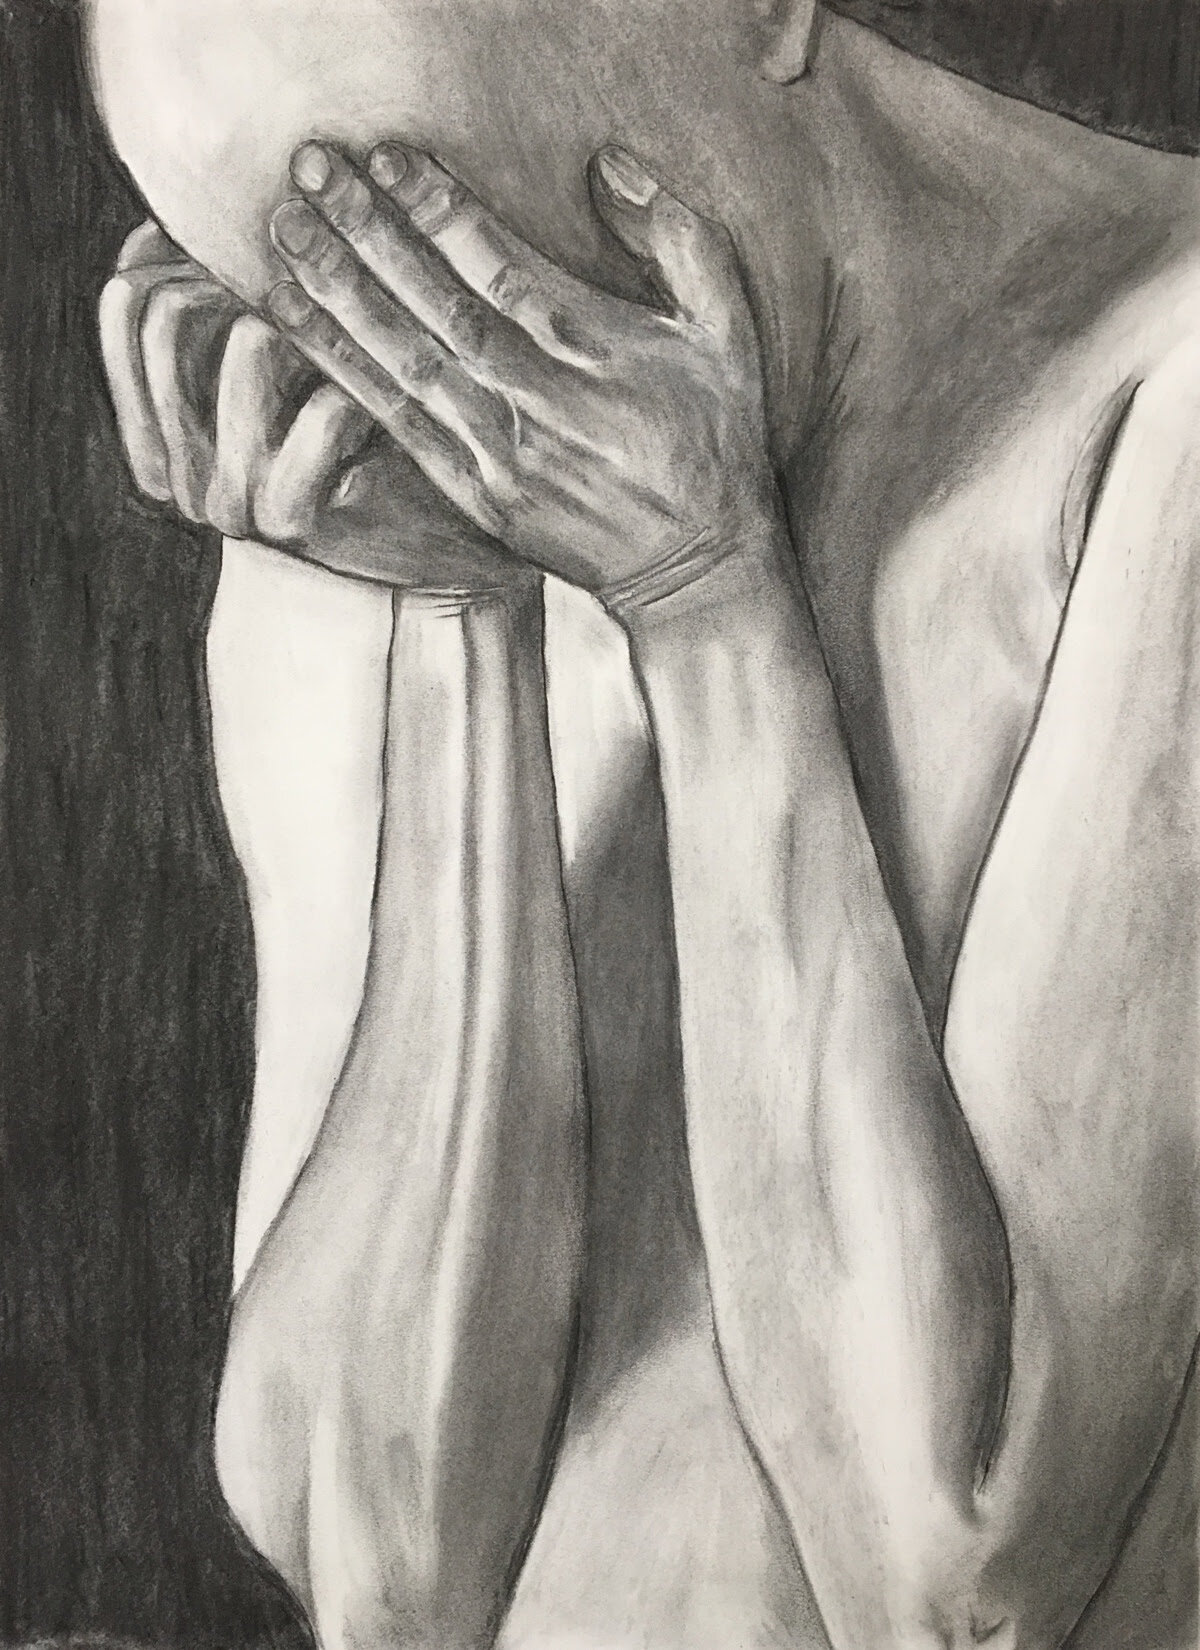 """Drawing After """"All in a Day - Remorse""""    Charcoal on paper  18"""" x 24"""" (framed)  $400  Click image to enlarge ⦿  Inquire"""